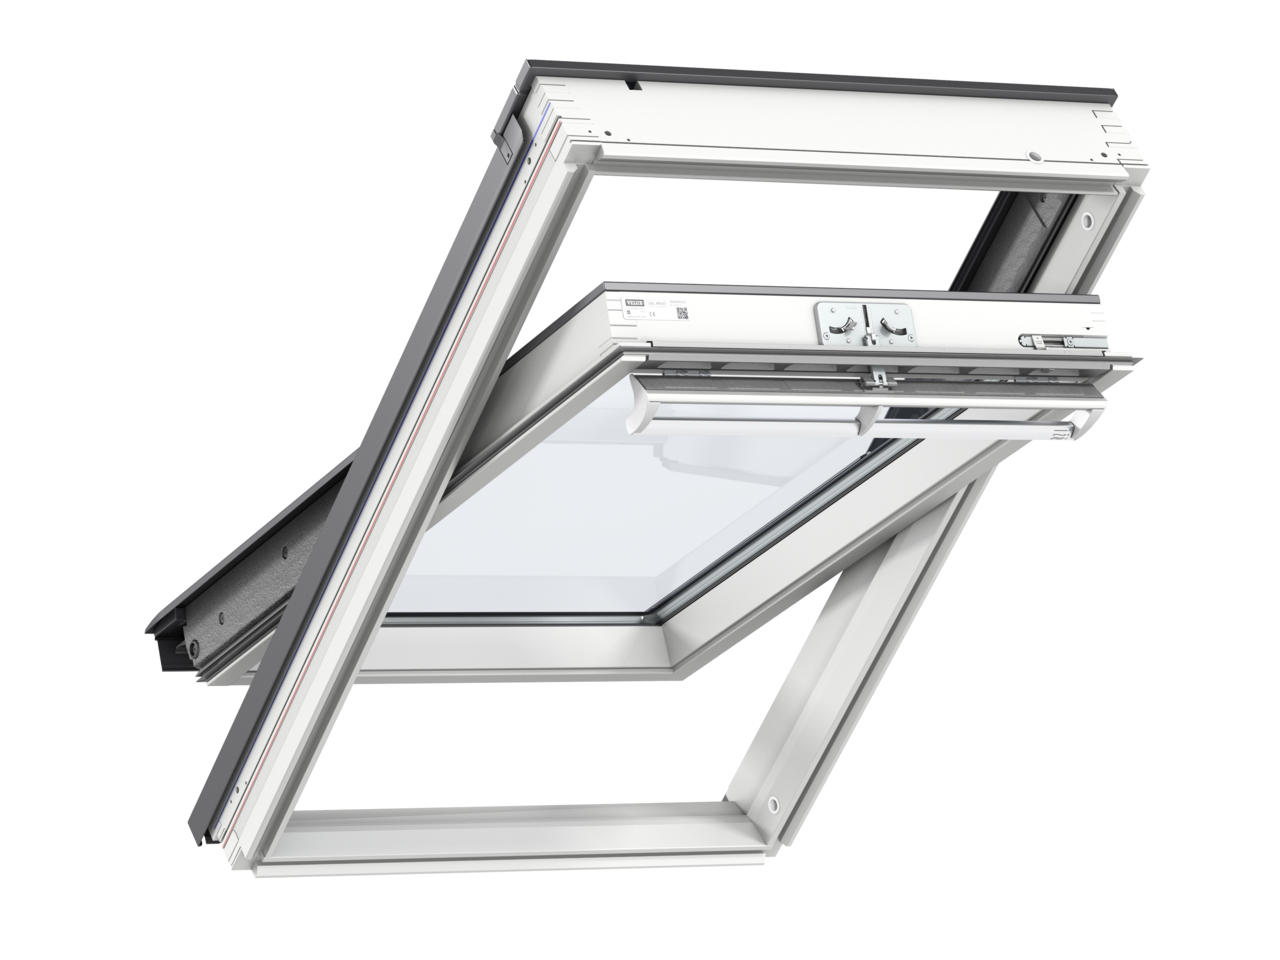 Velux GGL MK06 780 x 1180mm Centre Pivot 70QPane Roof Window - White Painted